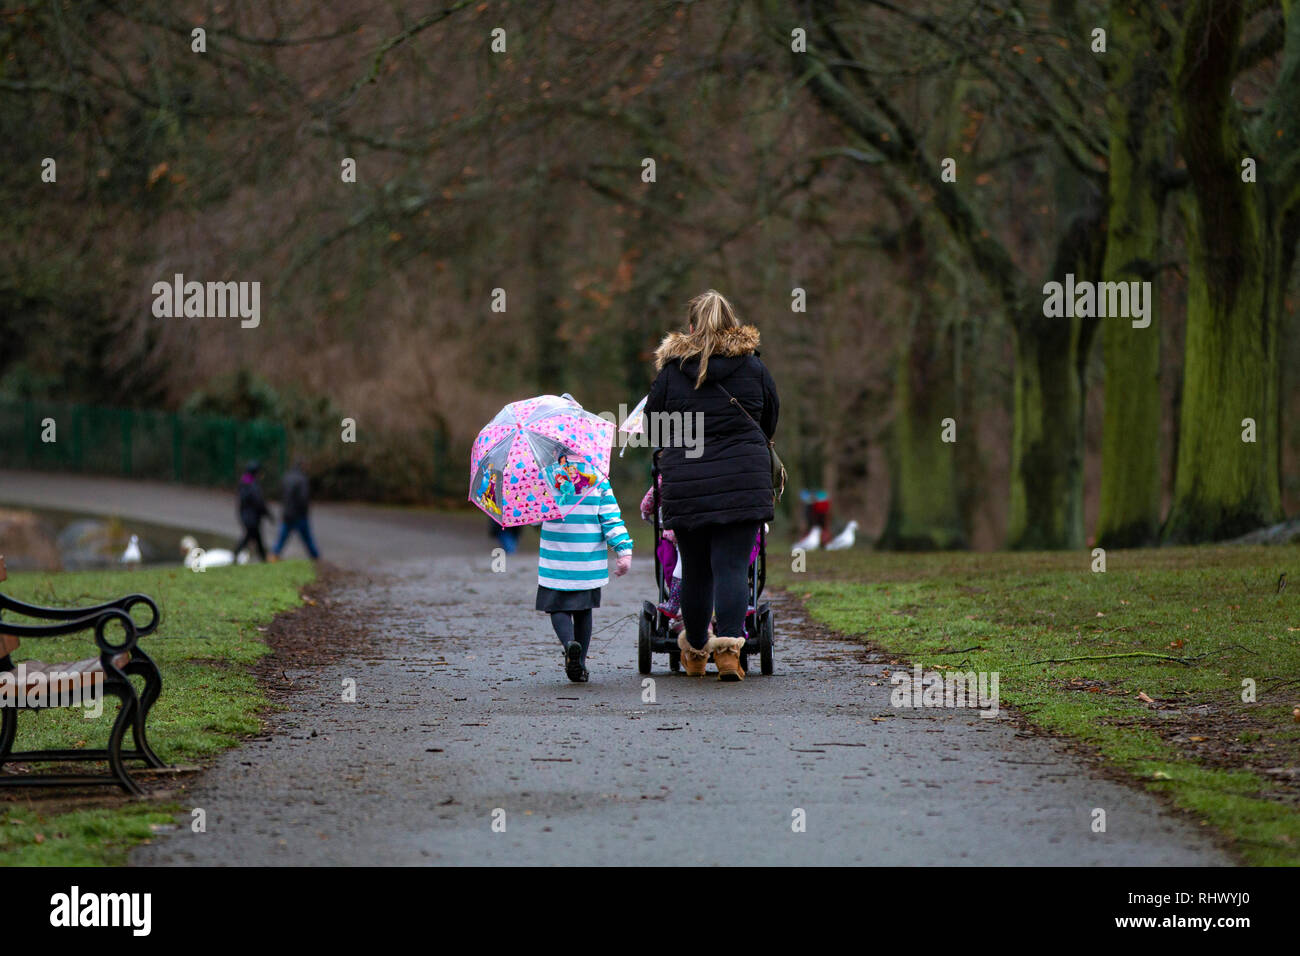 Northampton. U.K. 4th February 2019. Abington Park.  A miserable start to day for children heading off to the primary school this morning after heavy overnight rain. Credit: Keith J Smith./Alamy Live News - Stock Image